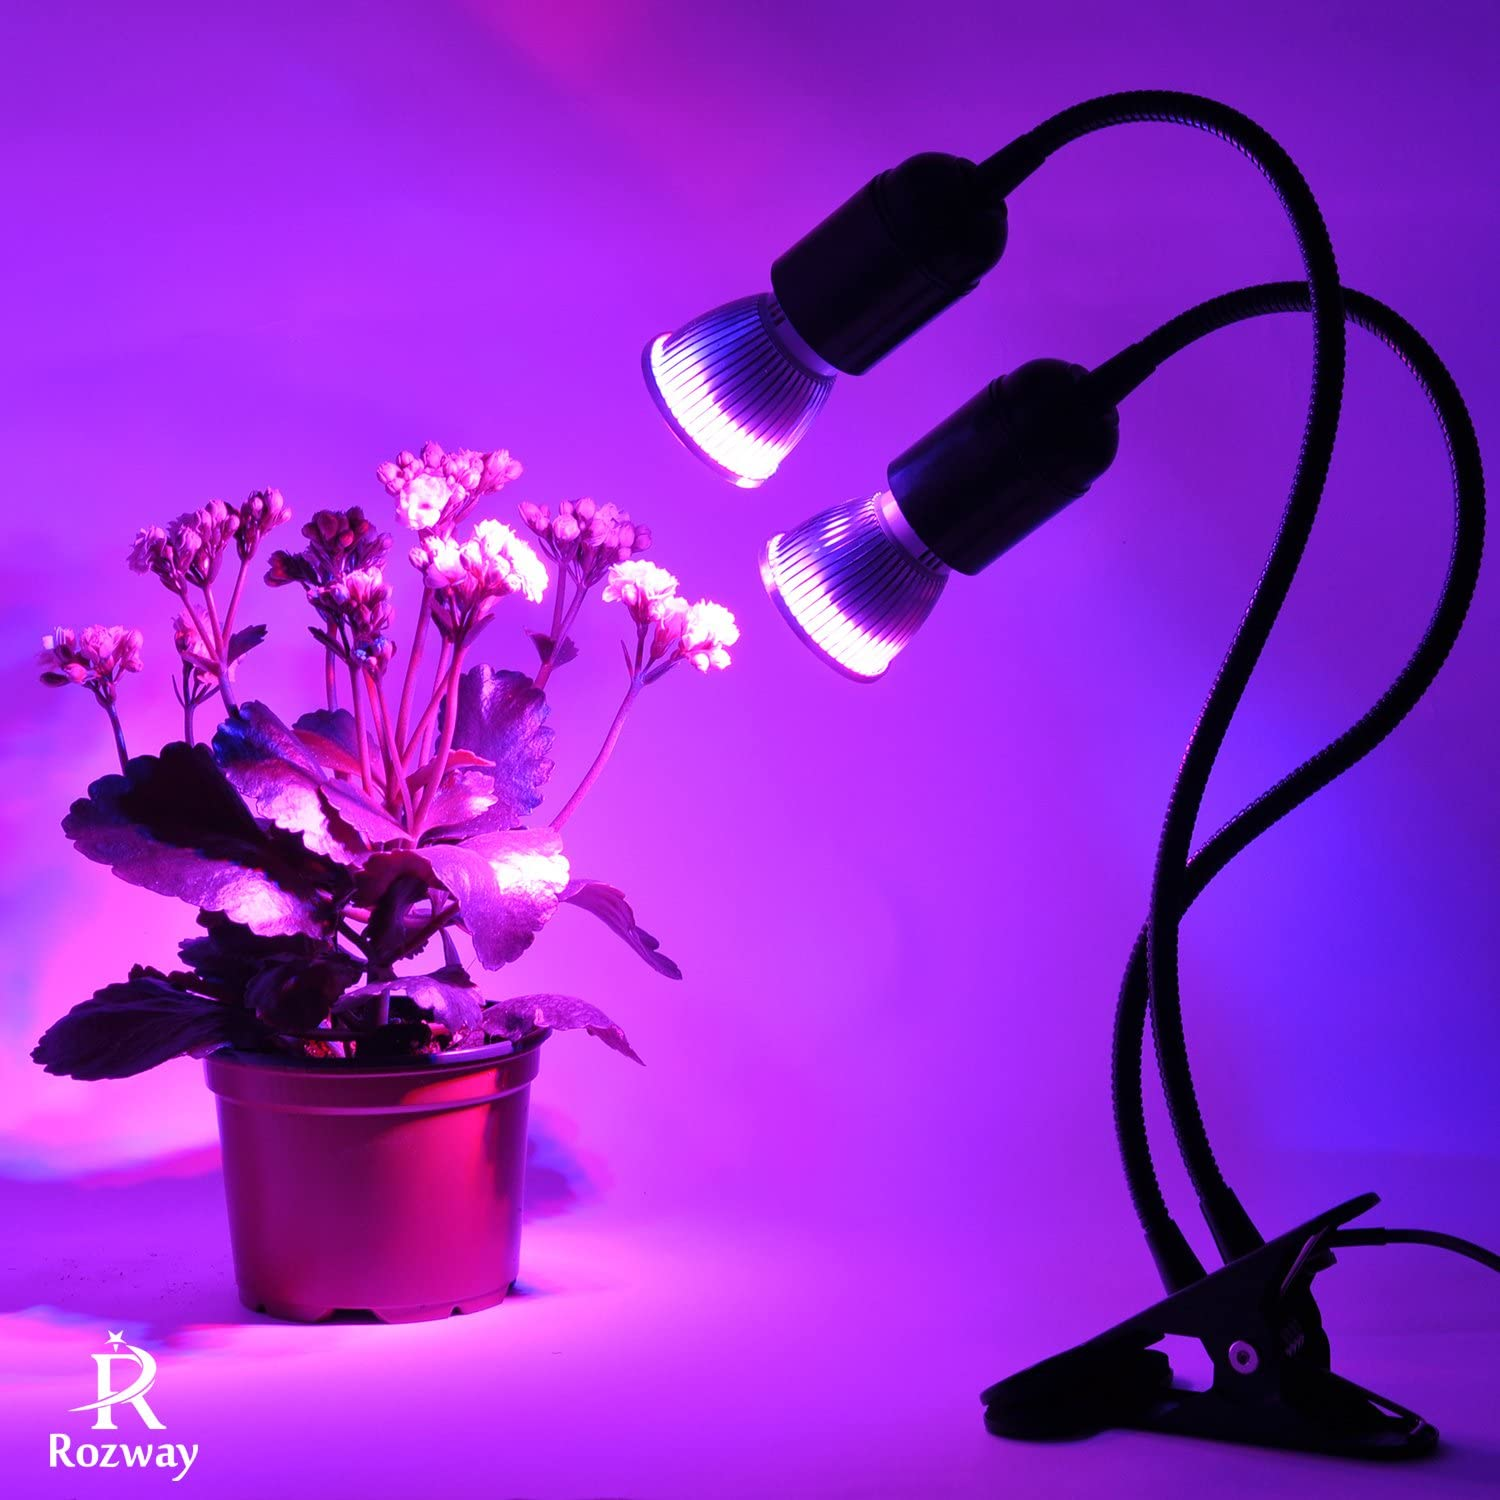 Grow Light, Rozway Grow Lamp for Indoor Plants | HIGH YIELDS | Dual Head Gooseneck Plant Lights for Indoor Plants Red Blue Spectrum with Replaceable Bulbs